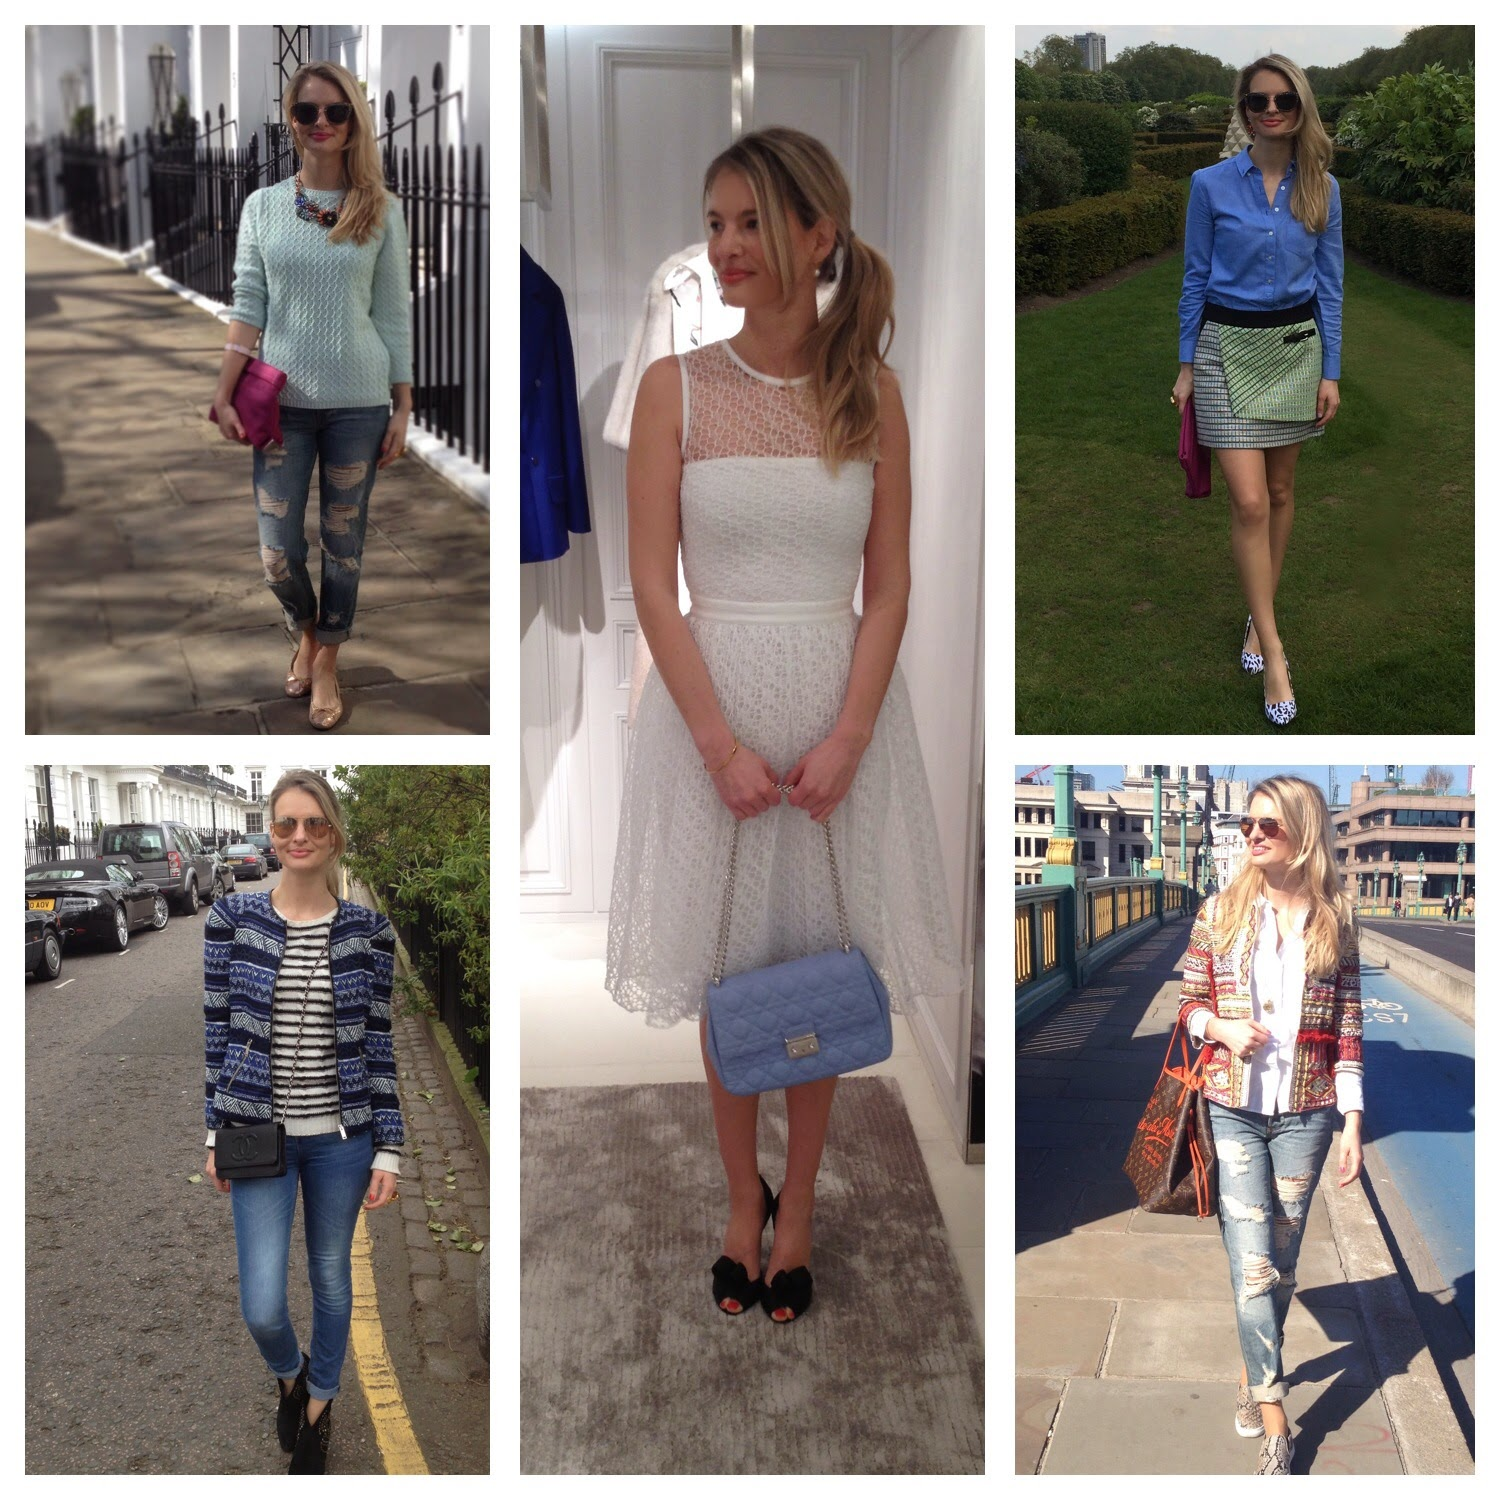 fashion blogger, chrissabella, april favourite looks, lookbook, street style, dior, dior dress, karen millen, karen millen skirt, gap shirt, gap, ripped jeans, ripped boyfriend jeans, mint jumper, lace dress, white lace dress, miss dior bag, baby blue bag, baby blue miss dior bag, ash boots, chanel bag